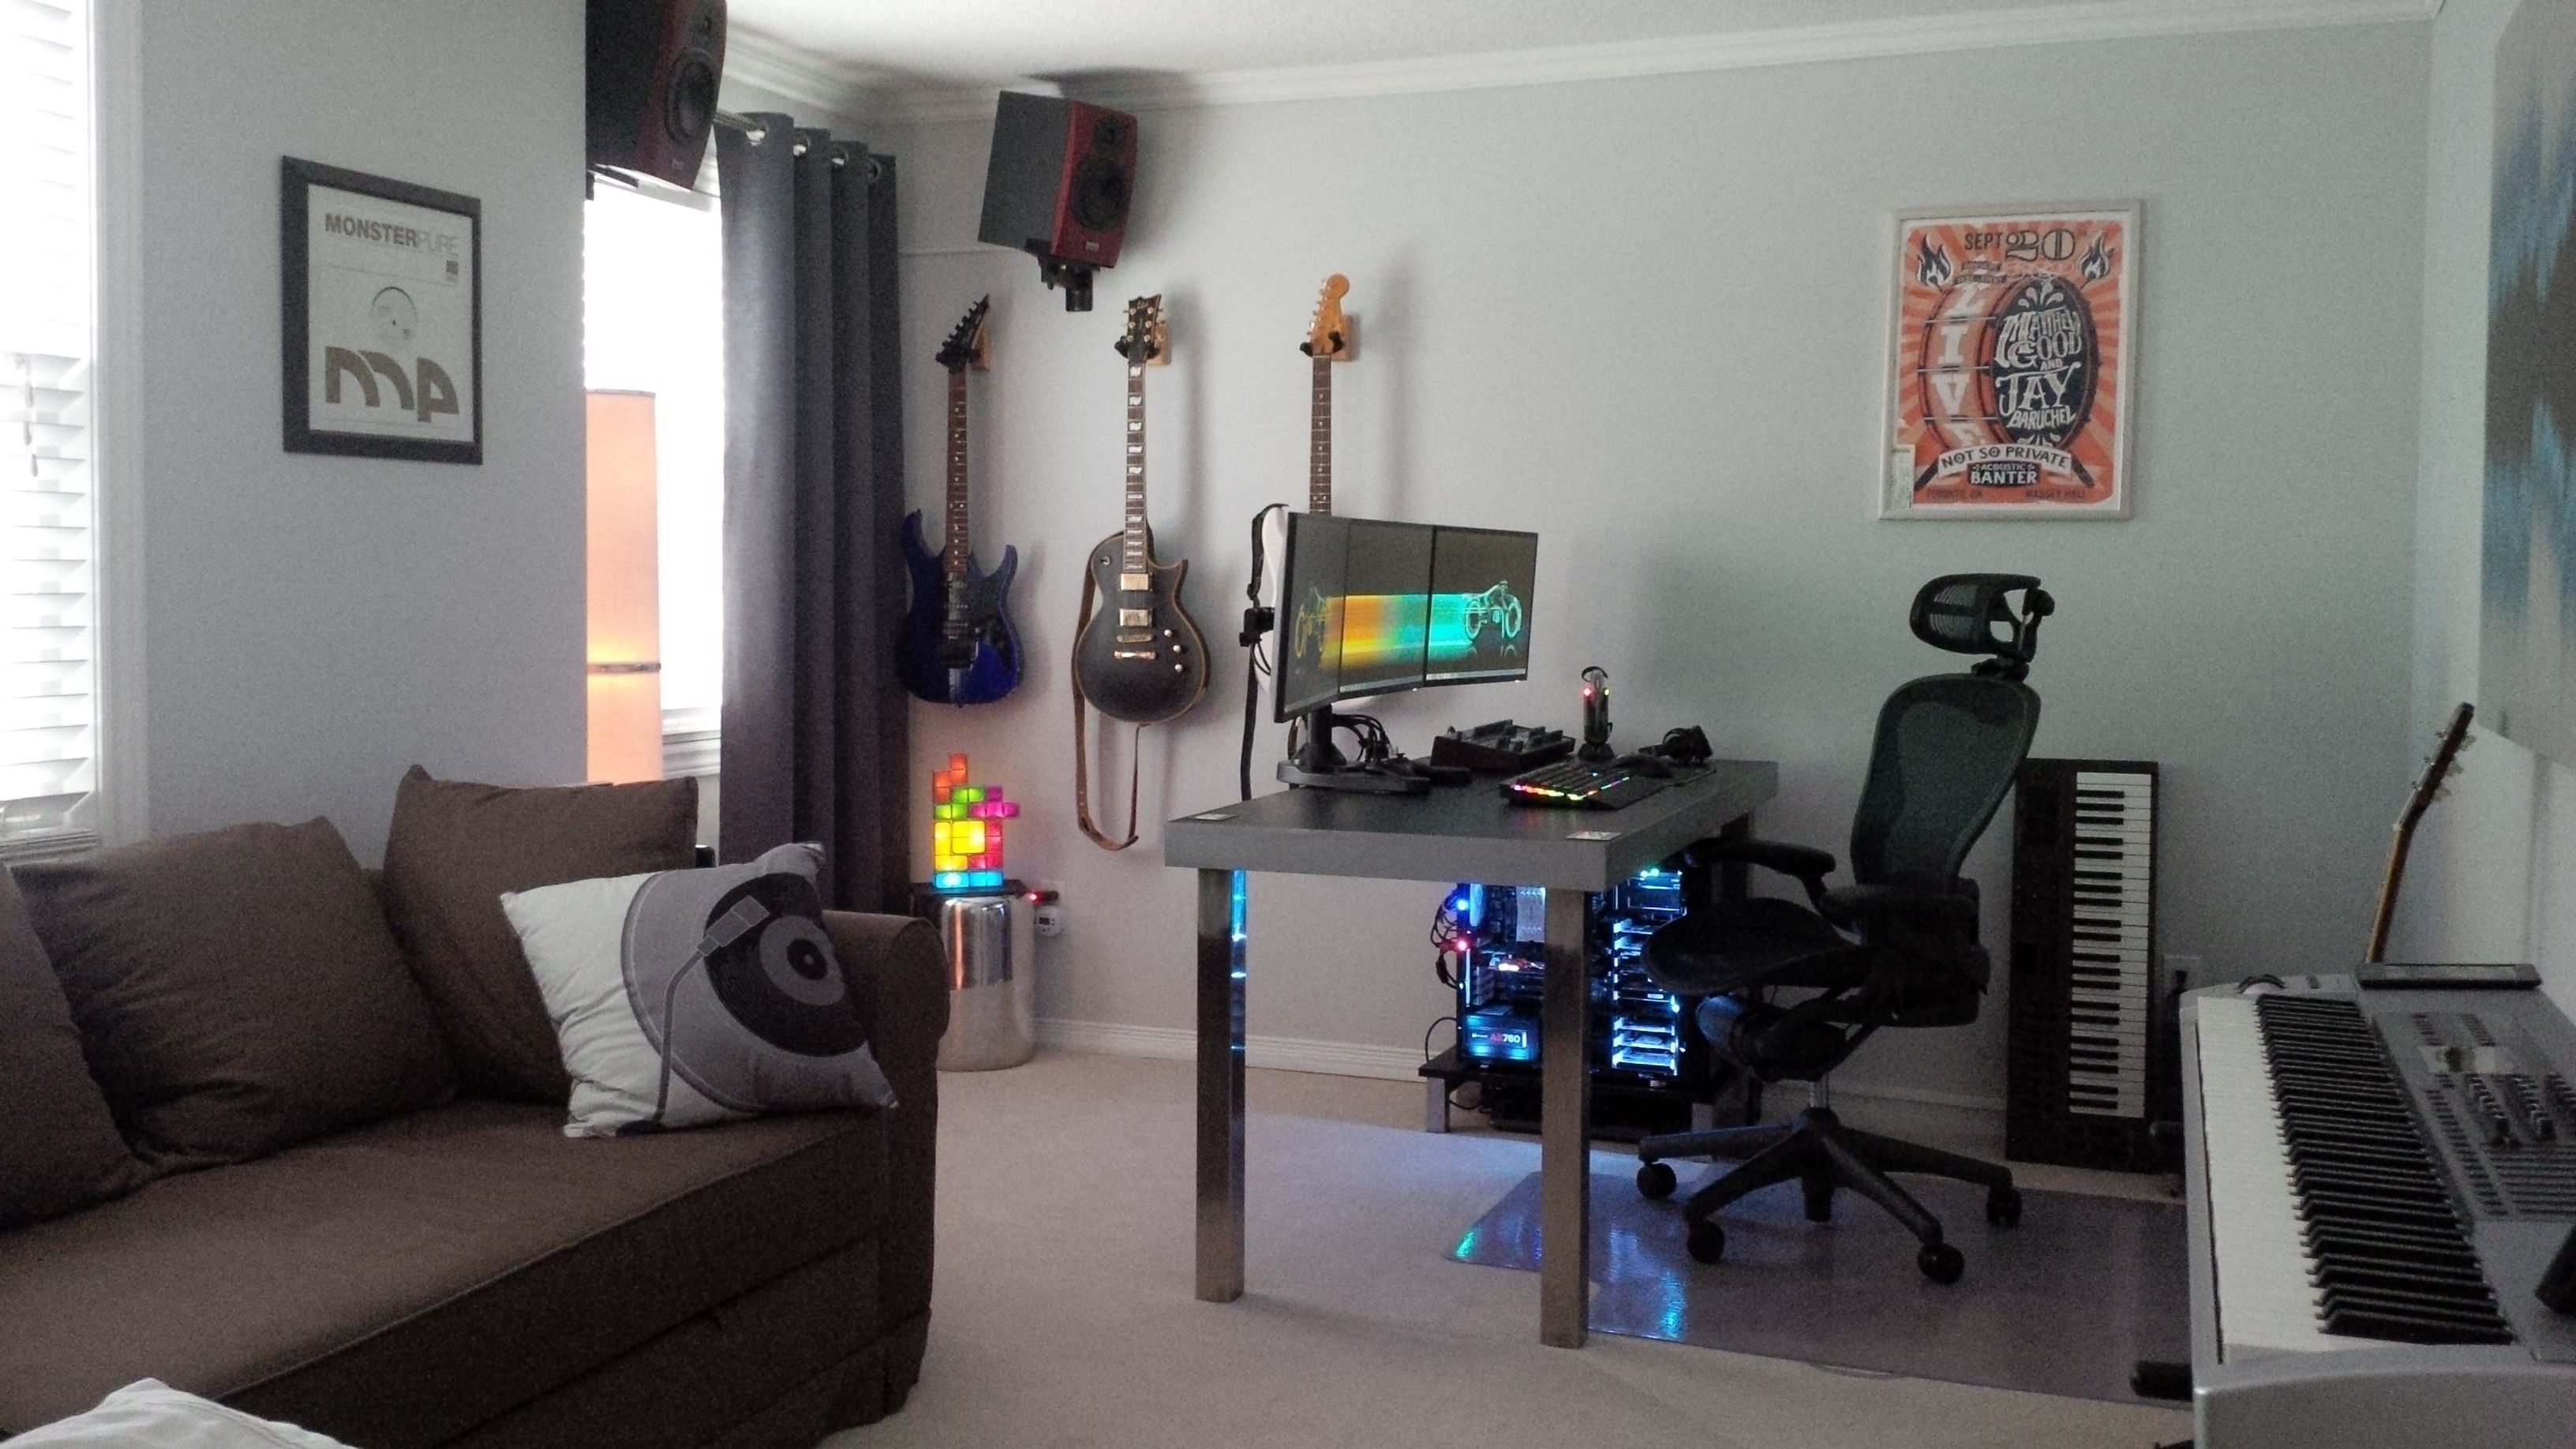 Apartment Decorating Reddit gaming and music studio/office via reddit user revlogic | gaming